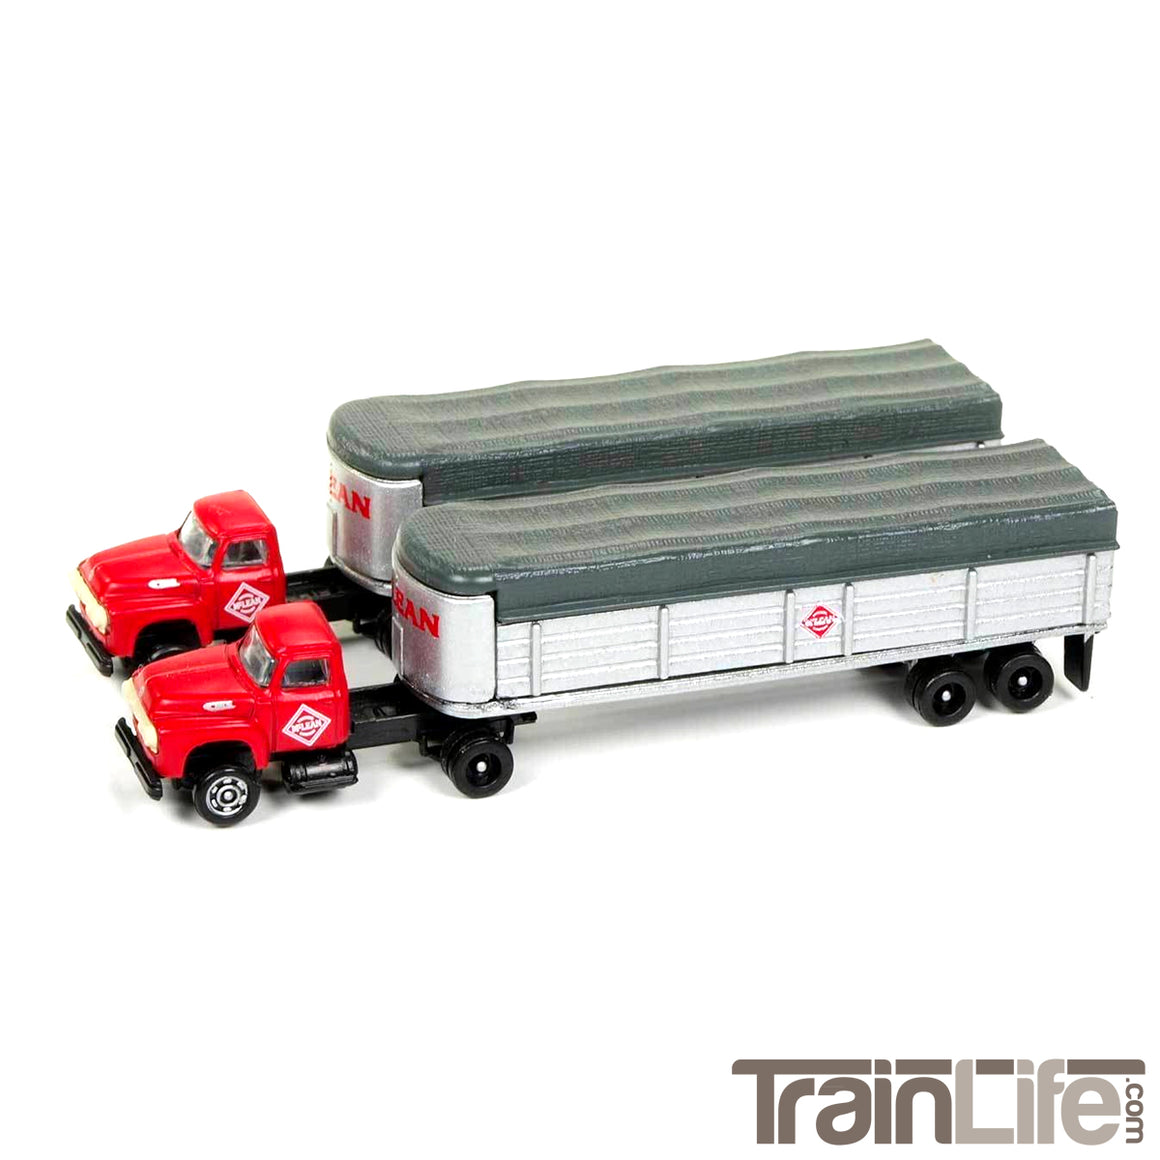 N Scale: 1954 Ford Tractor & Trailer Set - McLean Trucking - 2 Pack